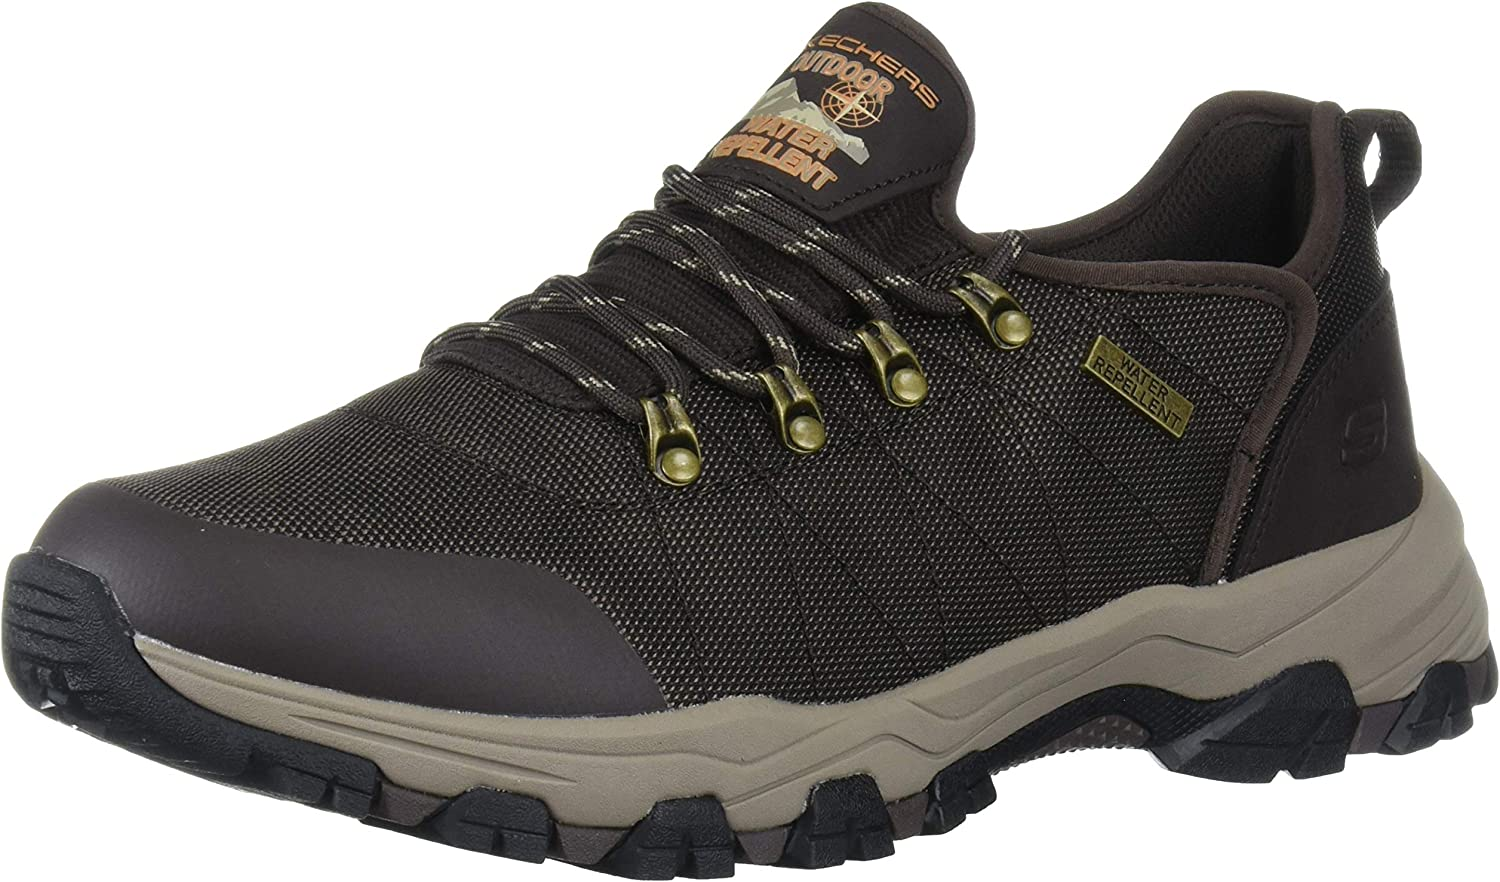 Skechers Men s SELMEN-Norden Trail Oxford Hiking Shoe